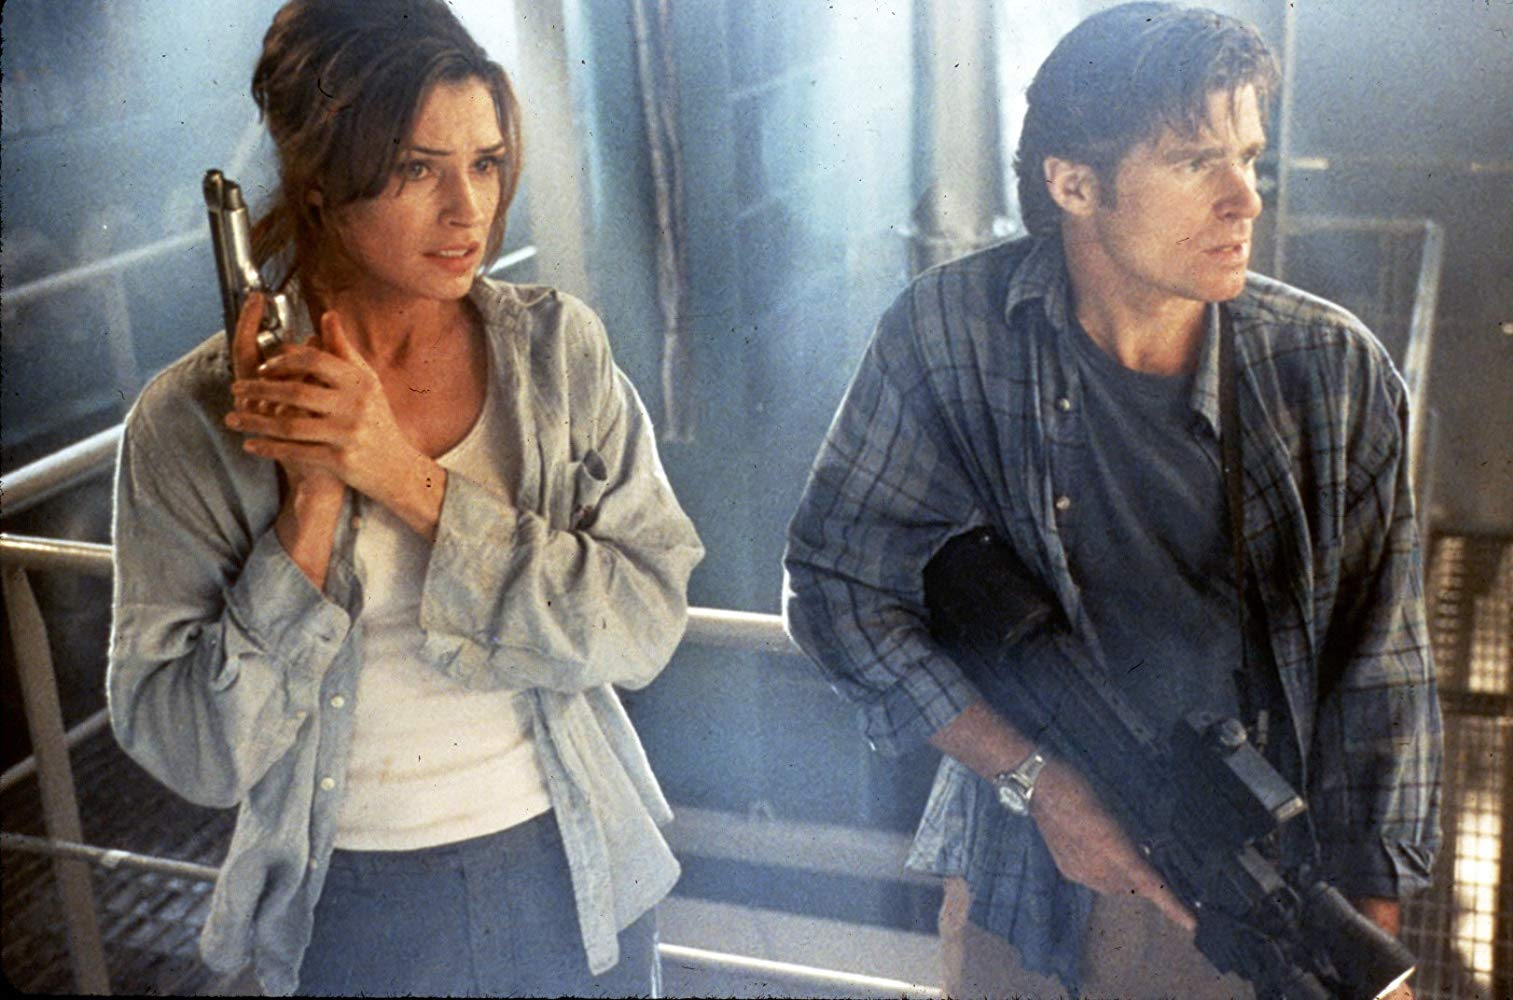 Deep Rising 1998 2 25 Things You Didn't Know About 1998's 'King Kong Prequel' Deep Rising